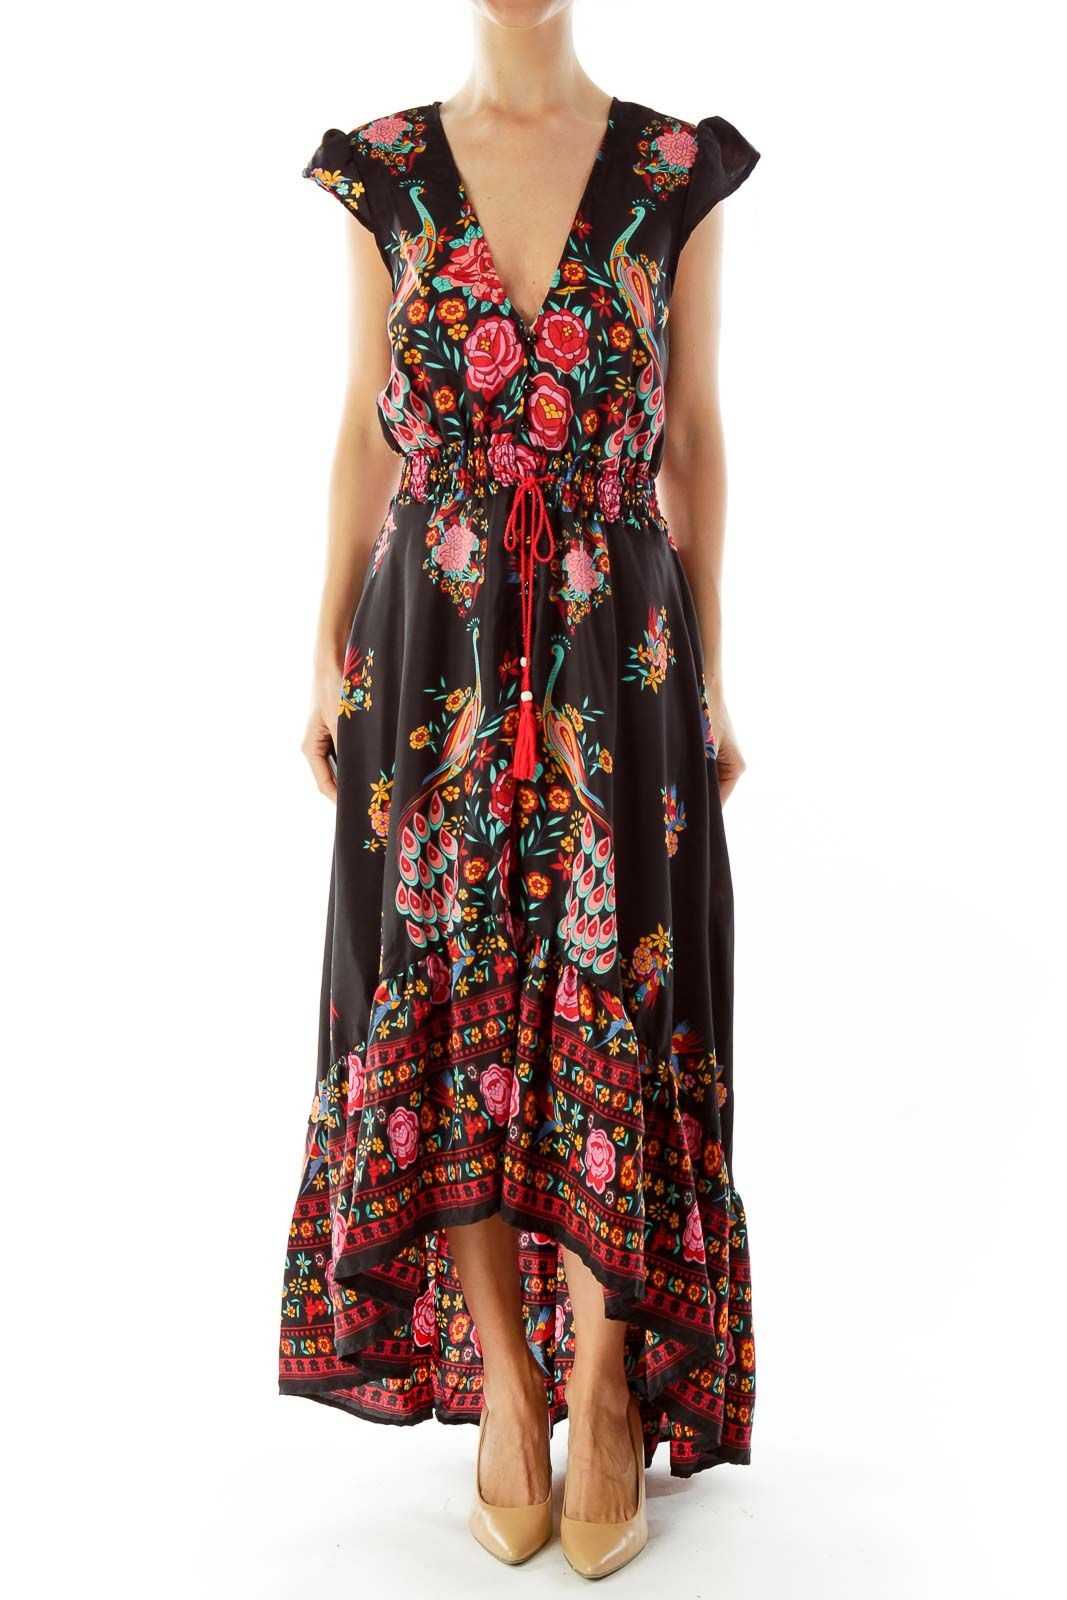 079f5e75beb Bohemian black floral open maxi dress by SilkRoll  silkroll